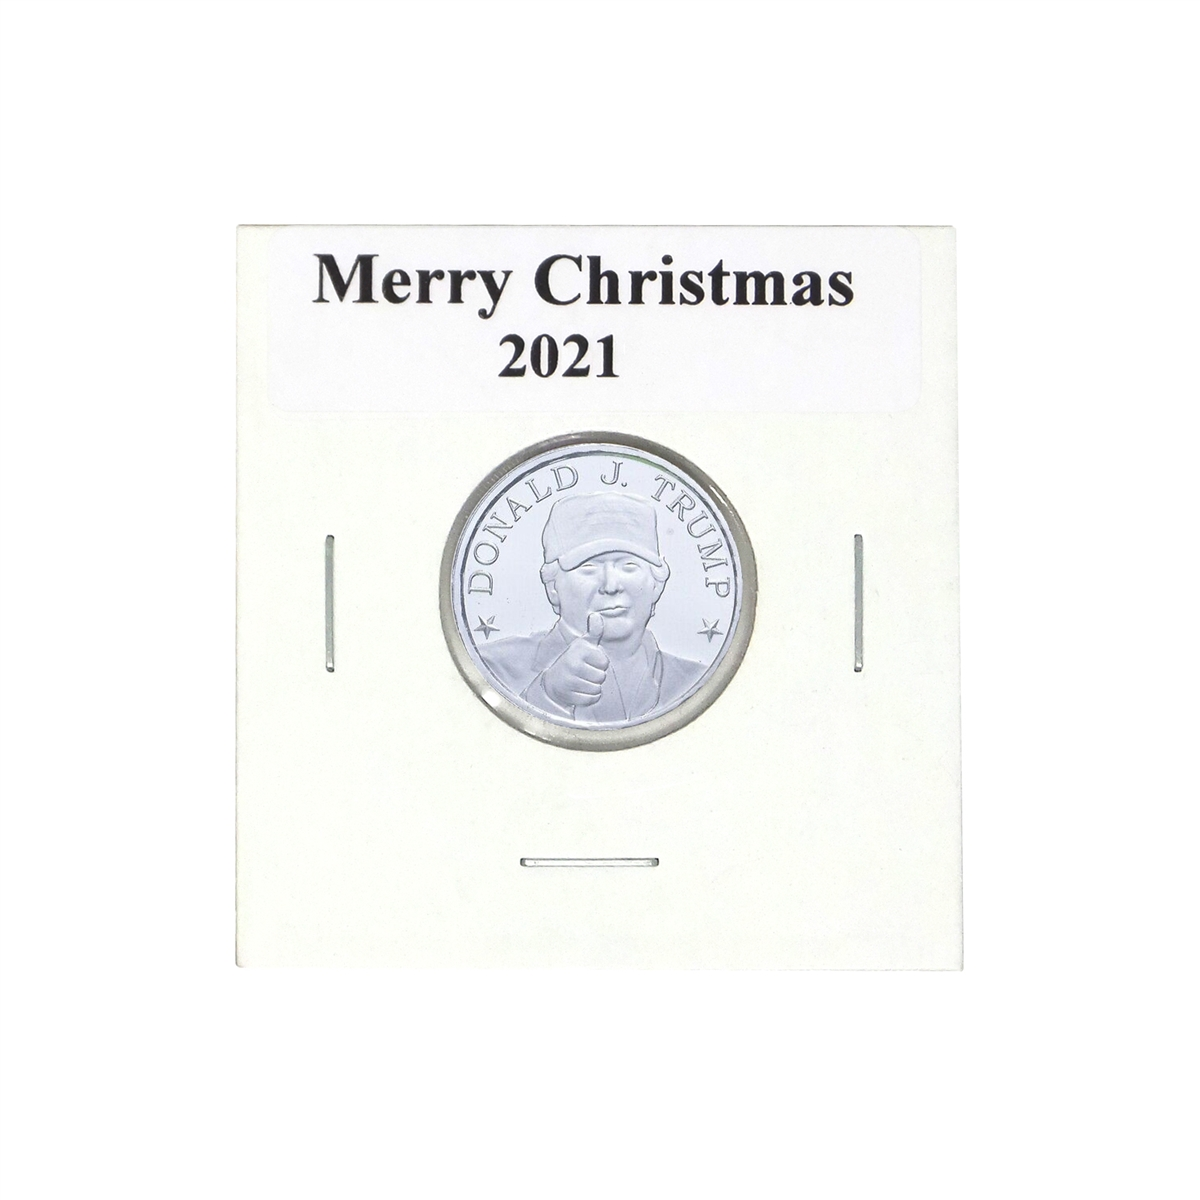 Donald J Trump Memorabilia 1 10th Oz Merry Christmas